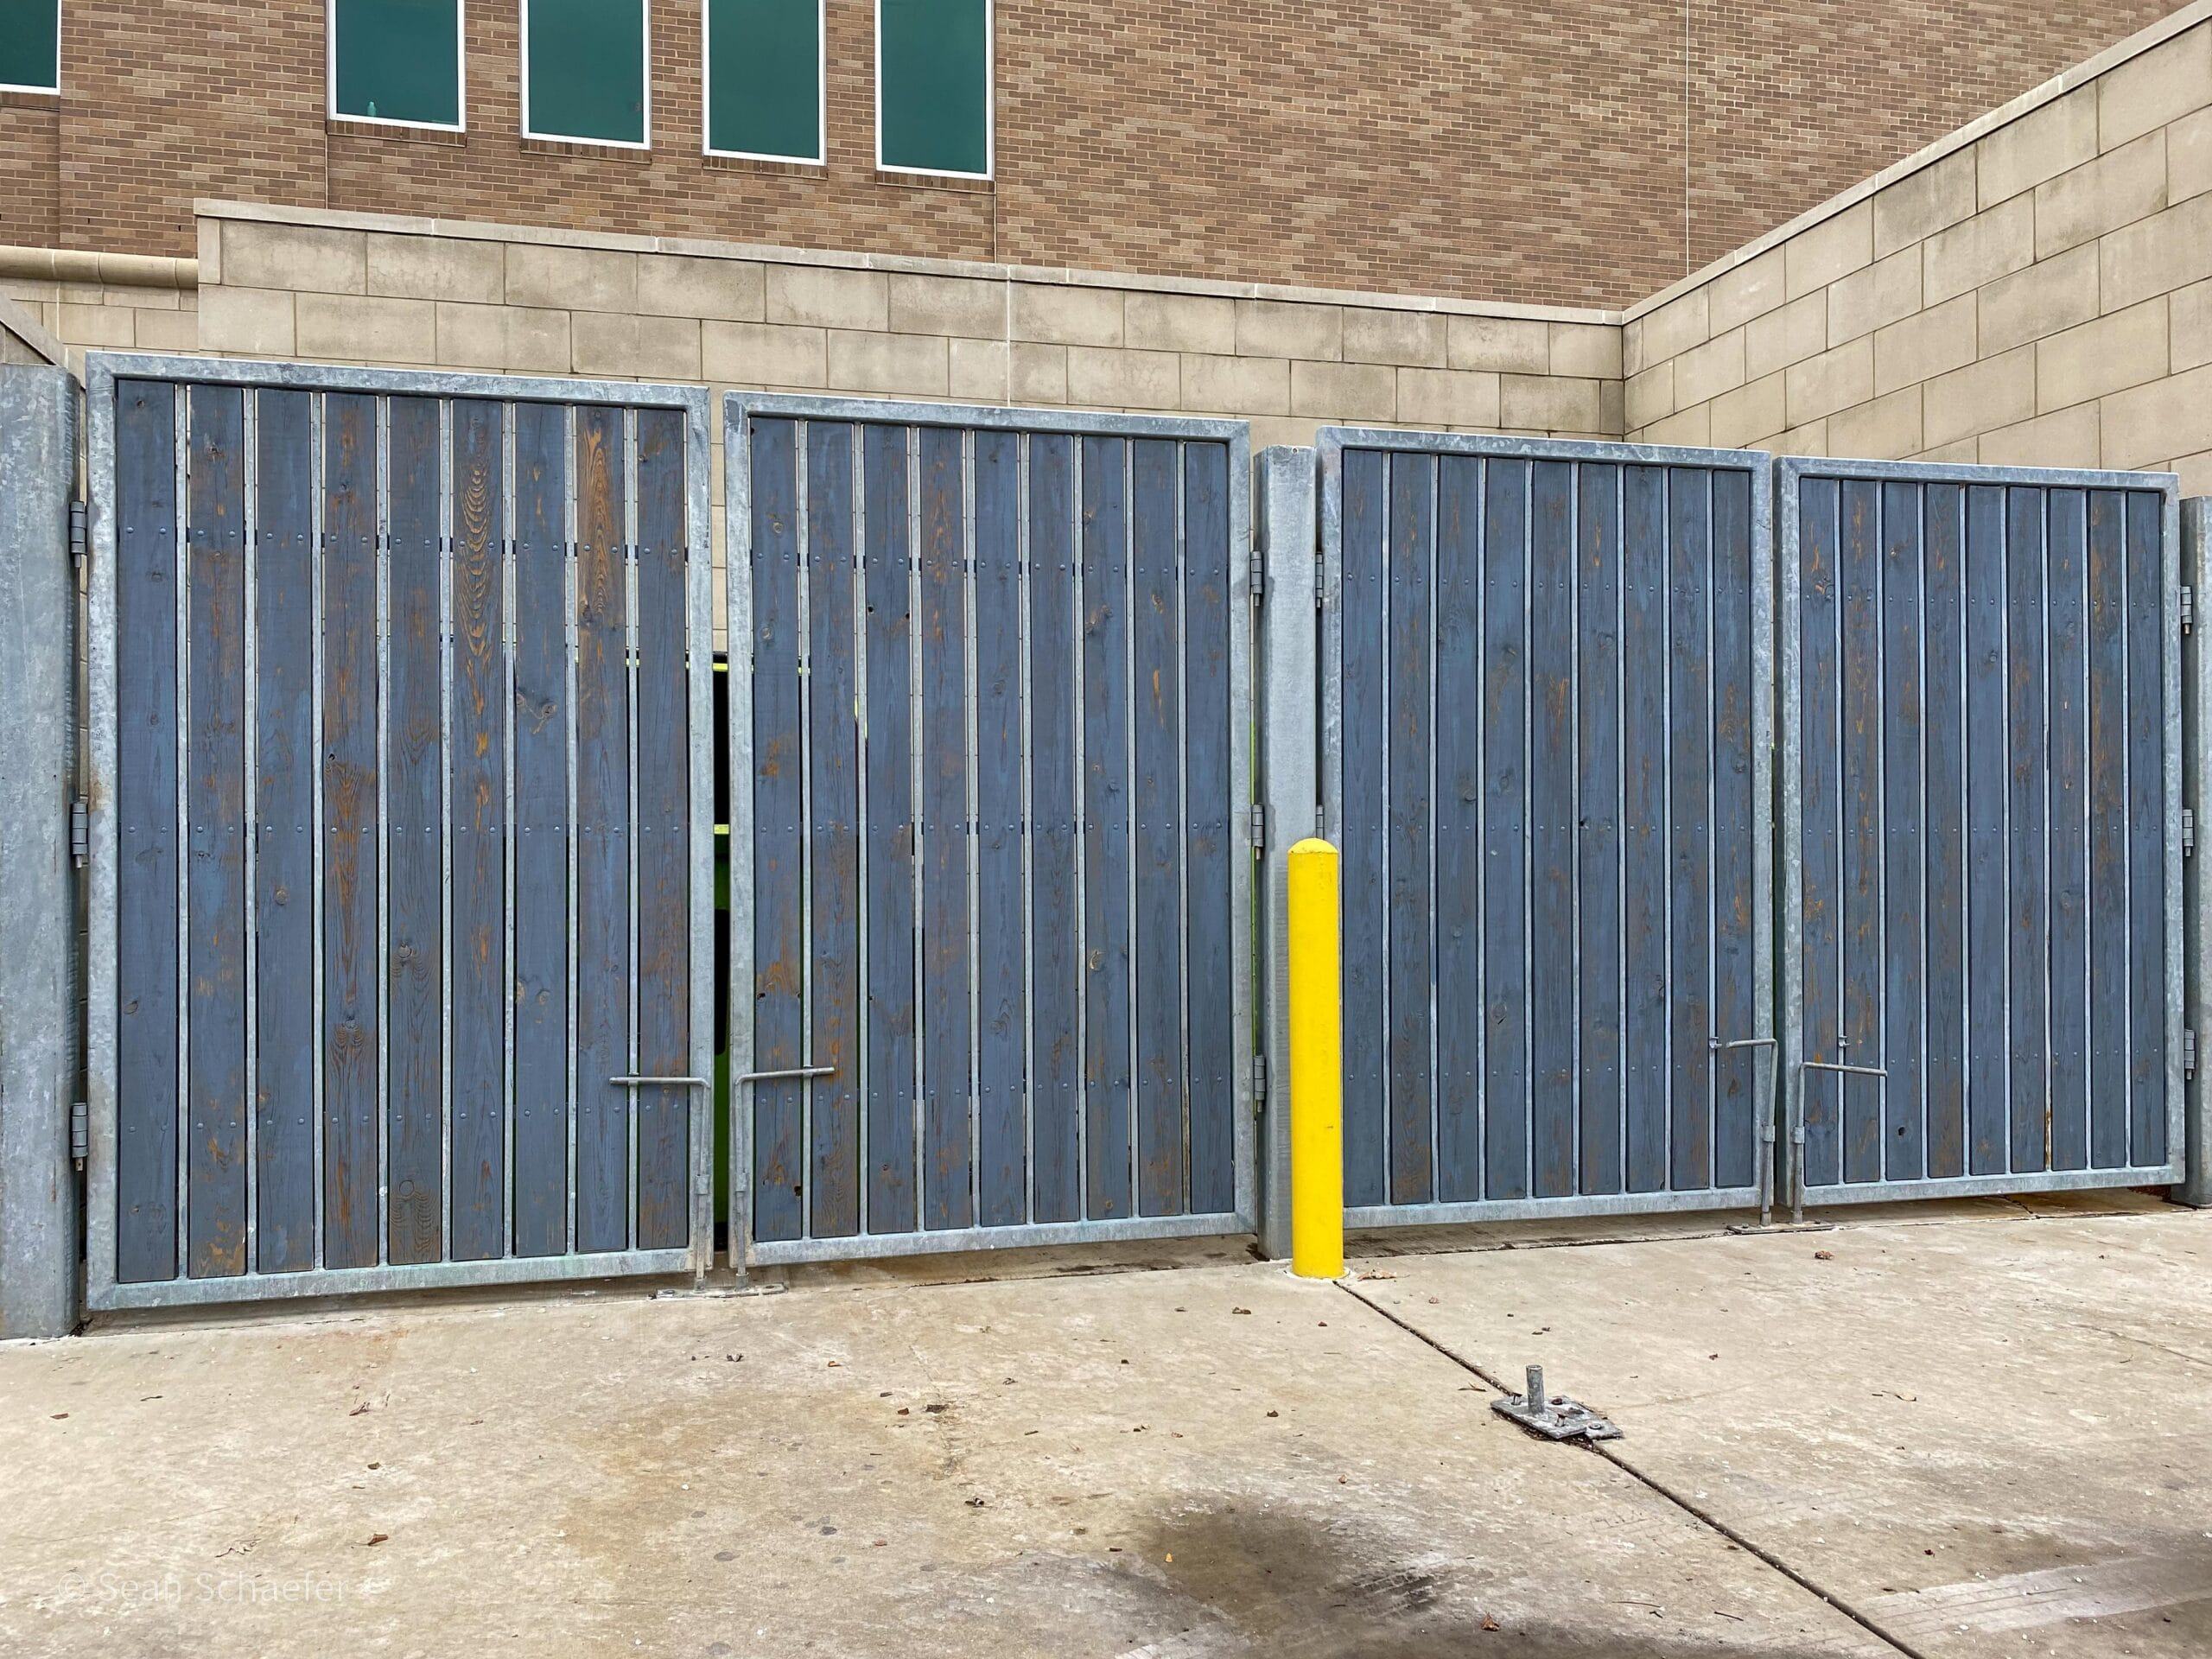 Hero image of commercial wood and galvanized steel dumpster gates at Michigan First Credit Union